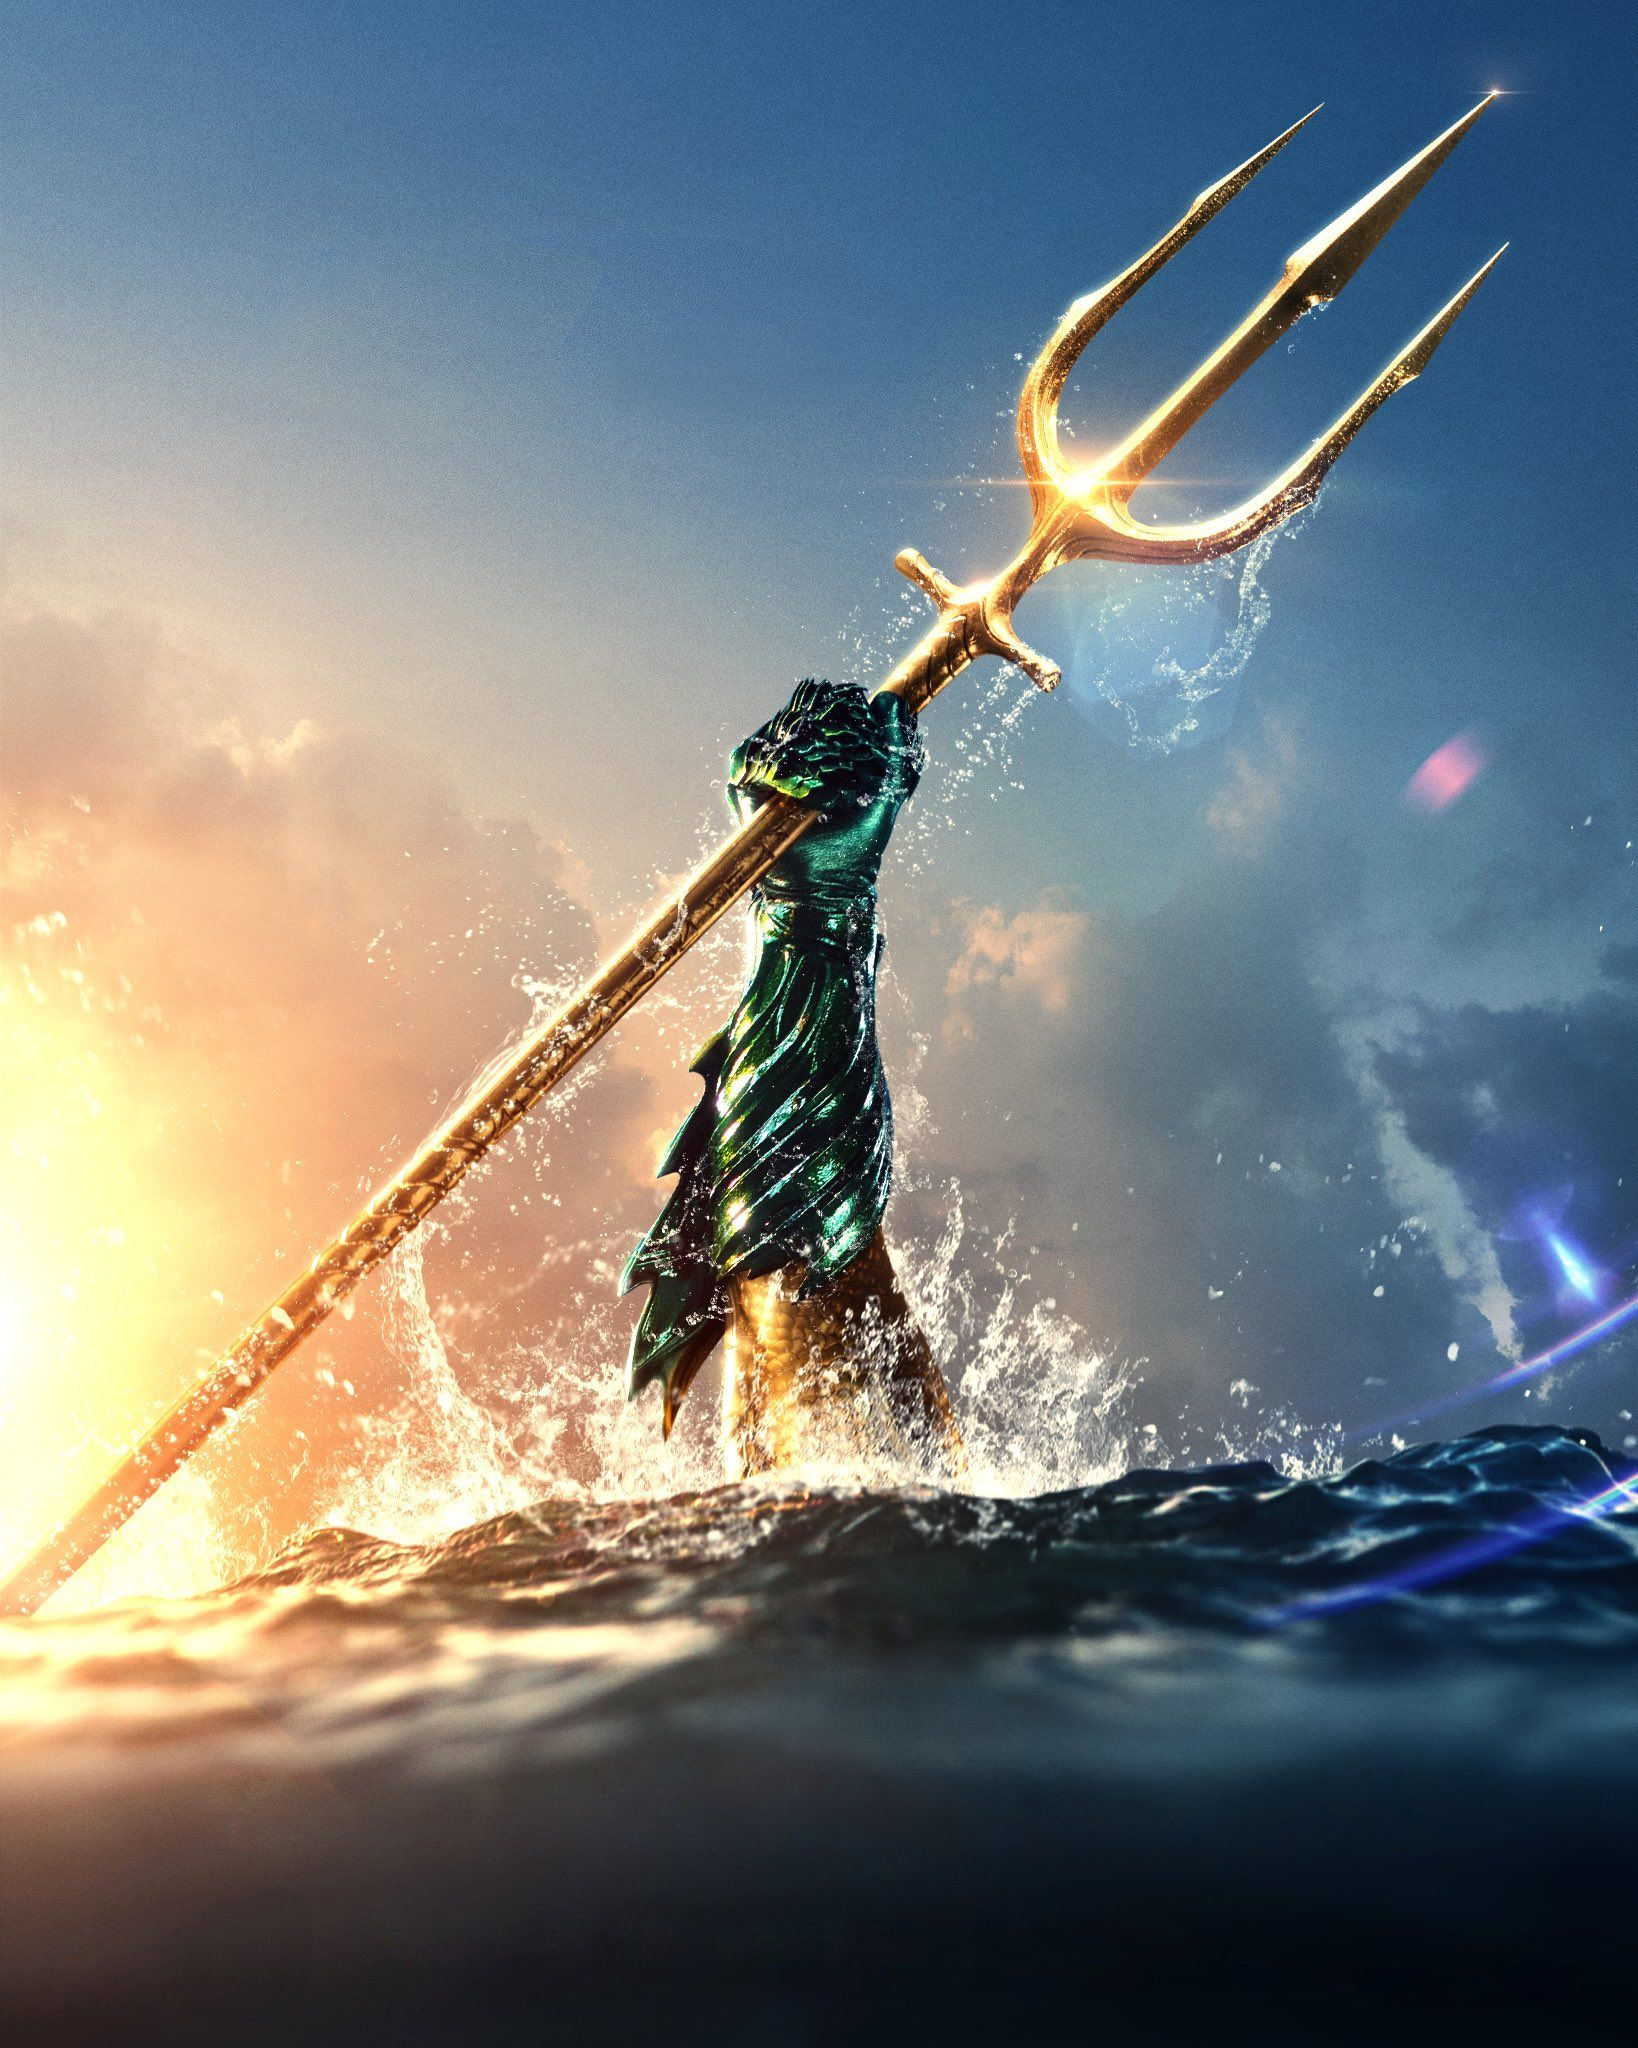 Aquaman Movie Brand New Poster Wallpaper Hd Movies 4k